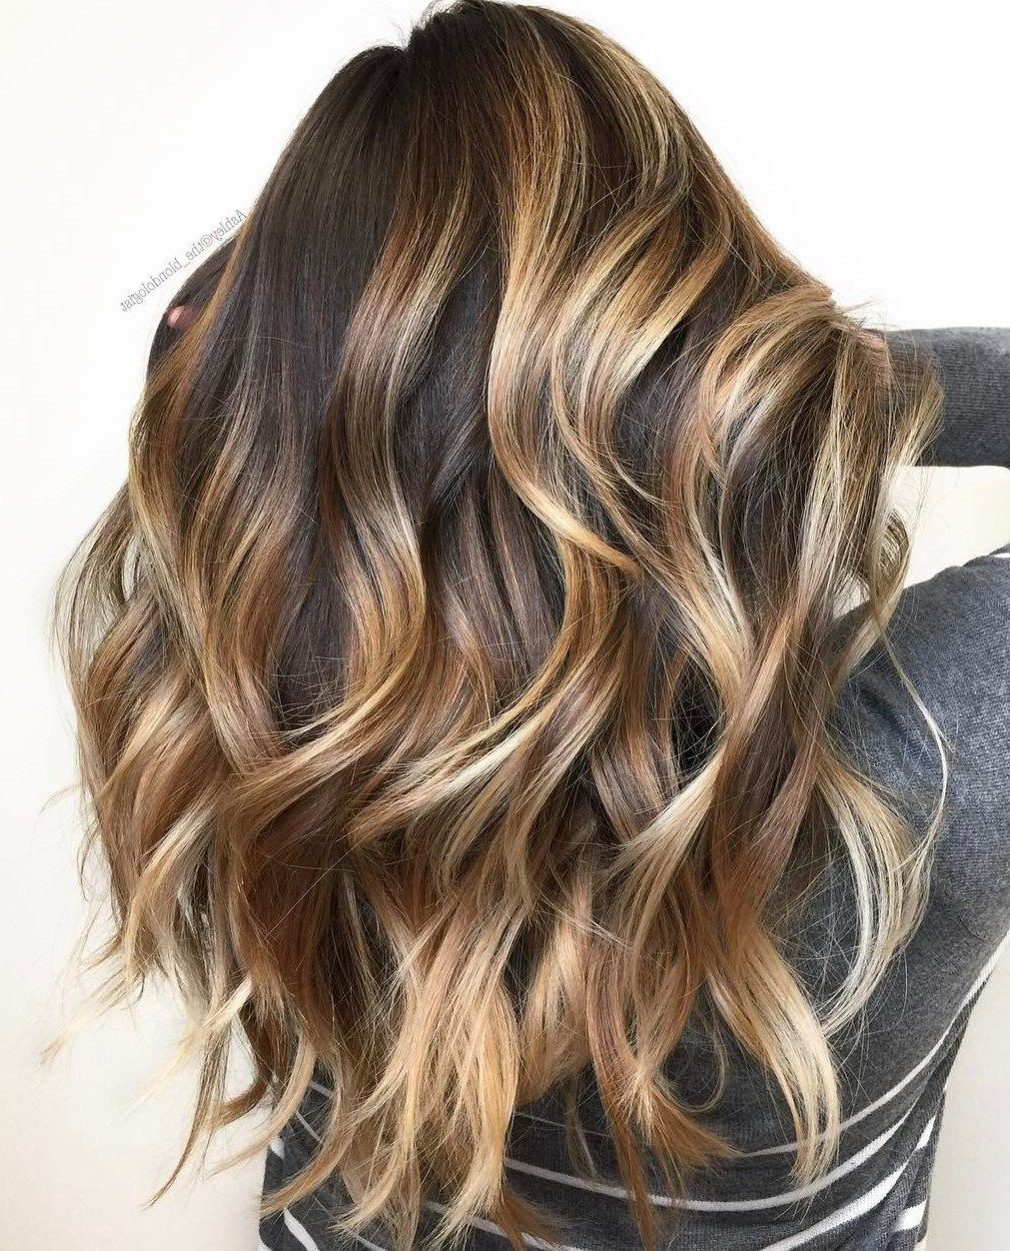 20 Head Turning Haircuts And Hairstyles For Long Thick Hair Regarding 2019 Long Thick Black Hairstyles With Light Brown Balayage (Gallery 2 of 20)